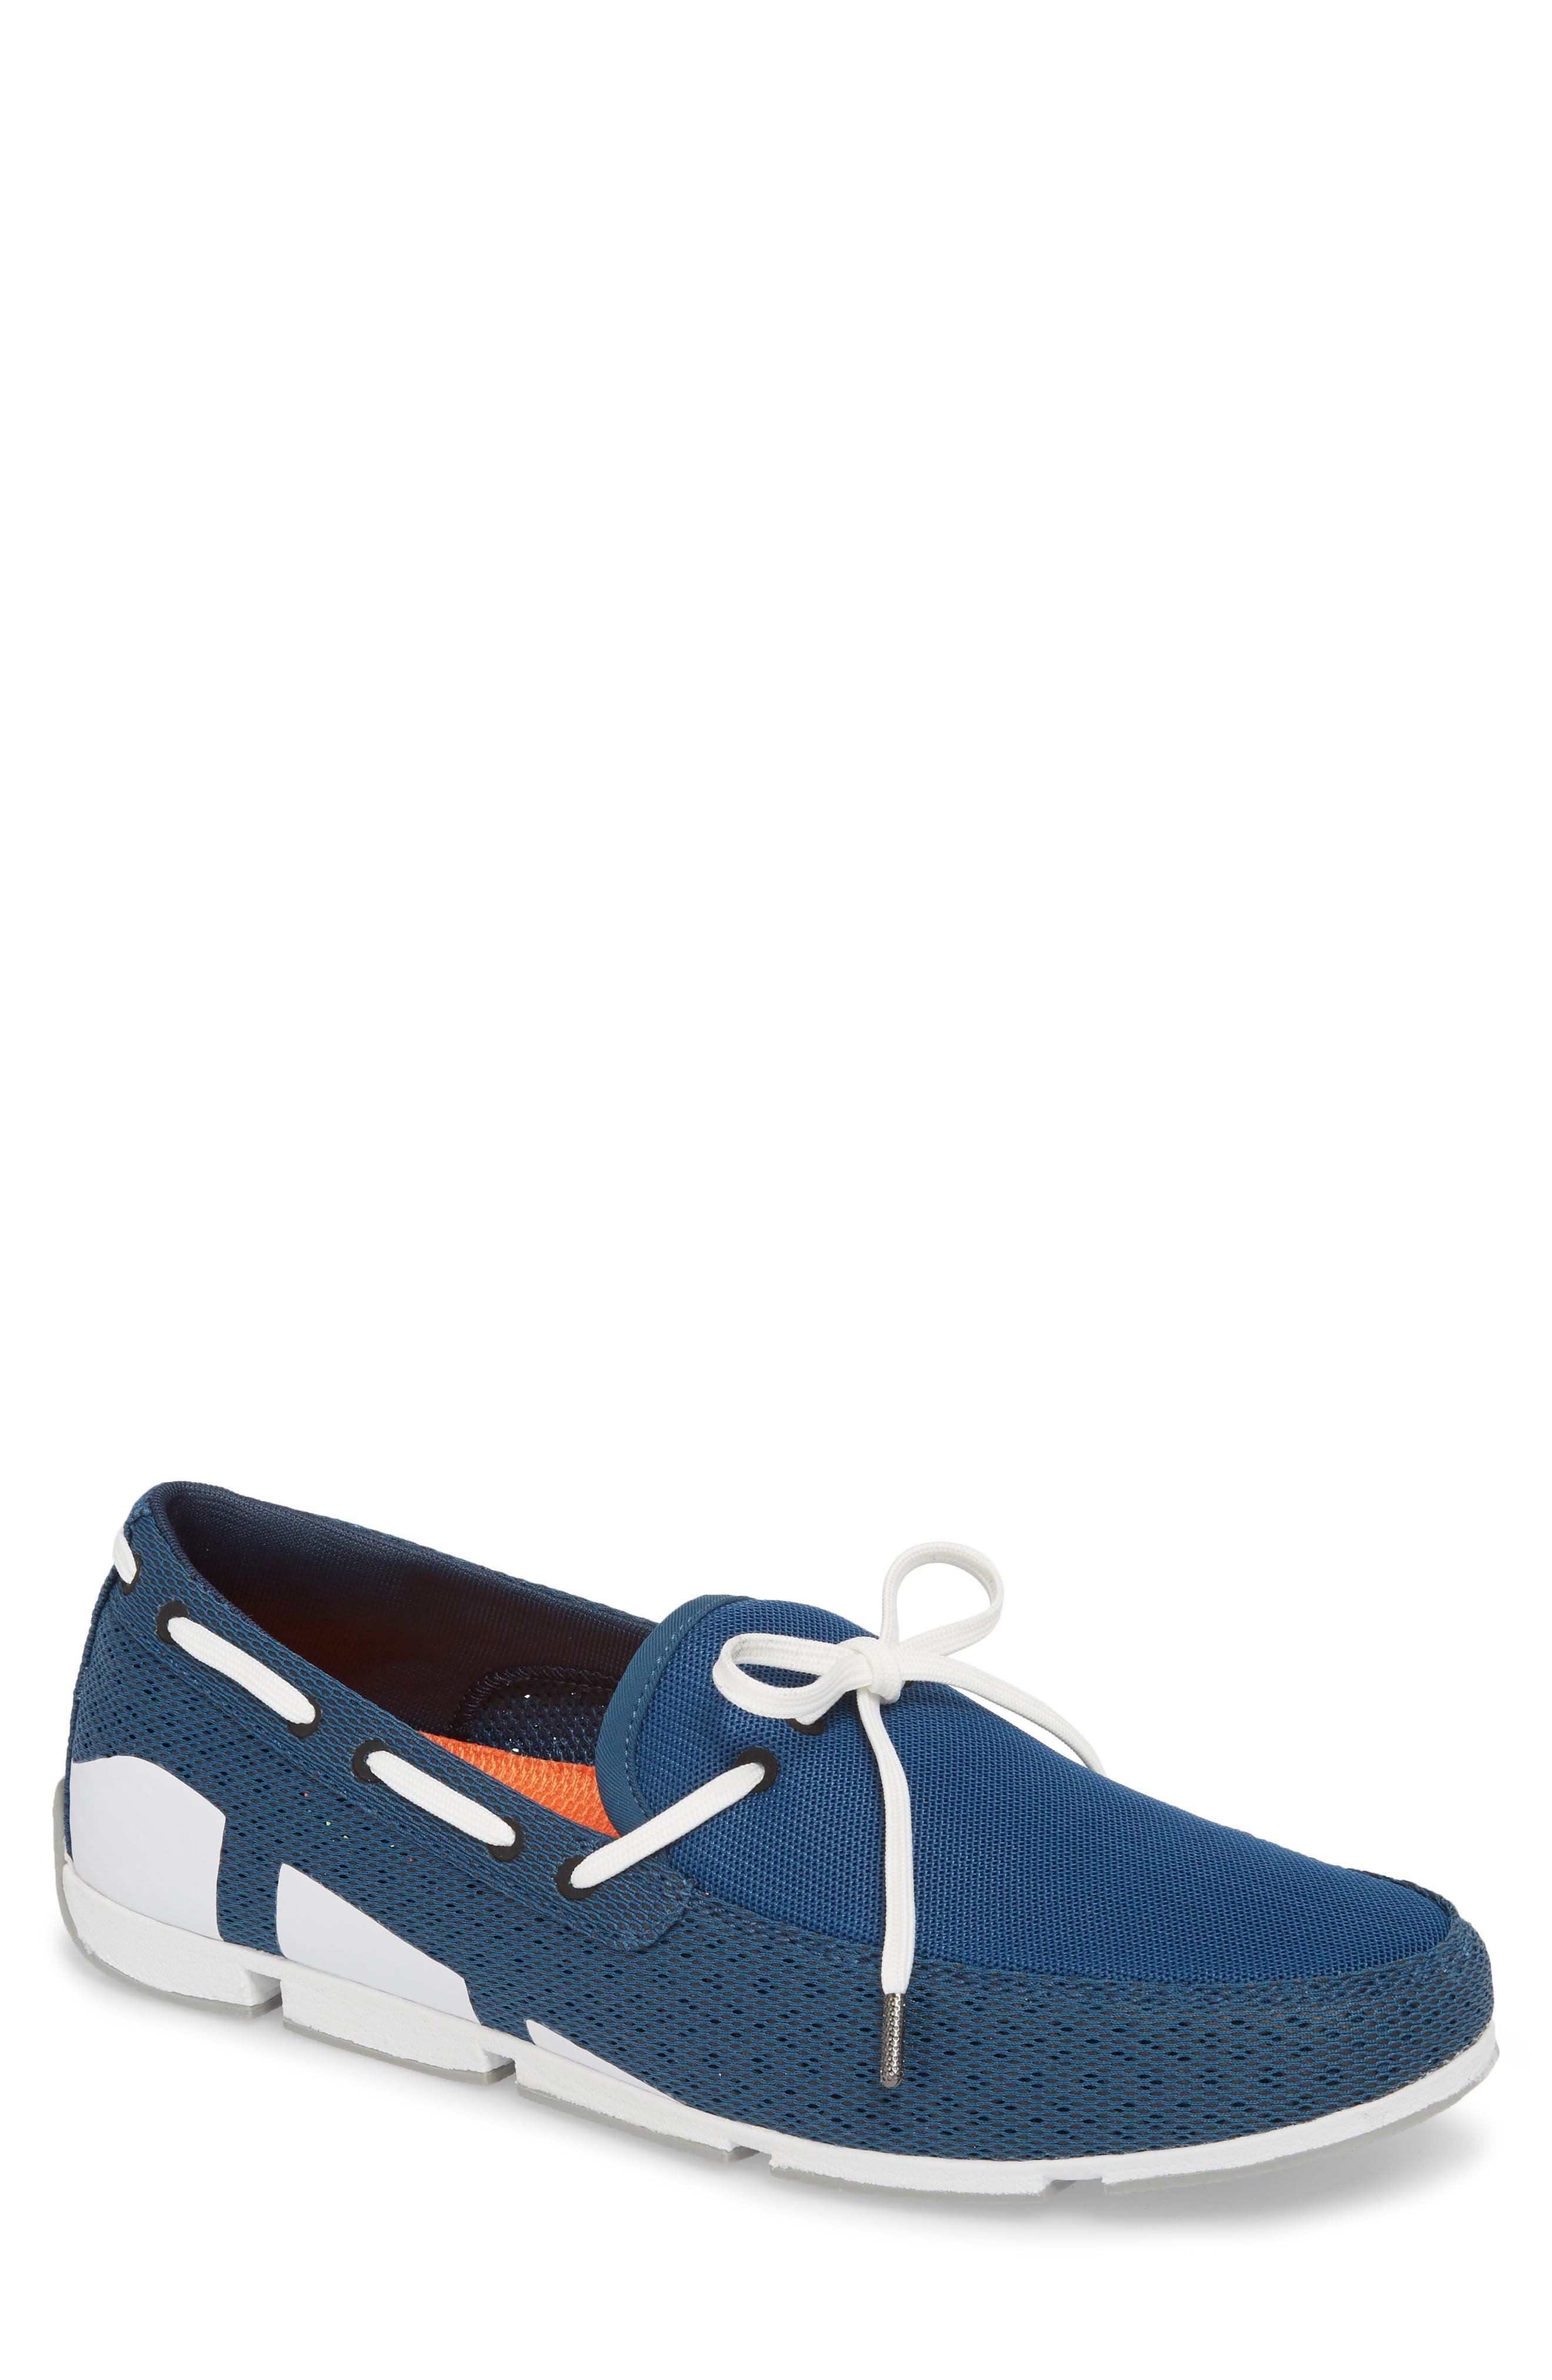 Breeze Loafer,                         Main,                         color, BLUE/ WHITE